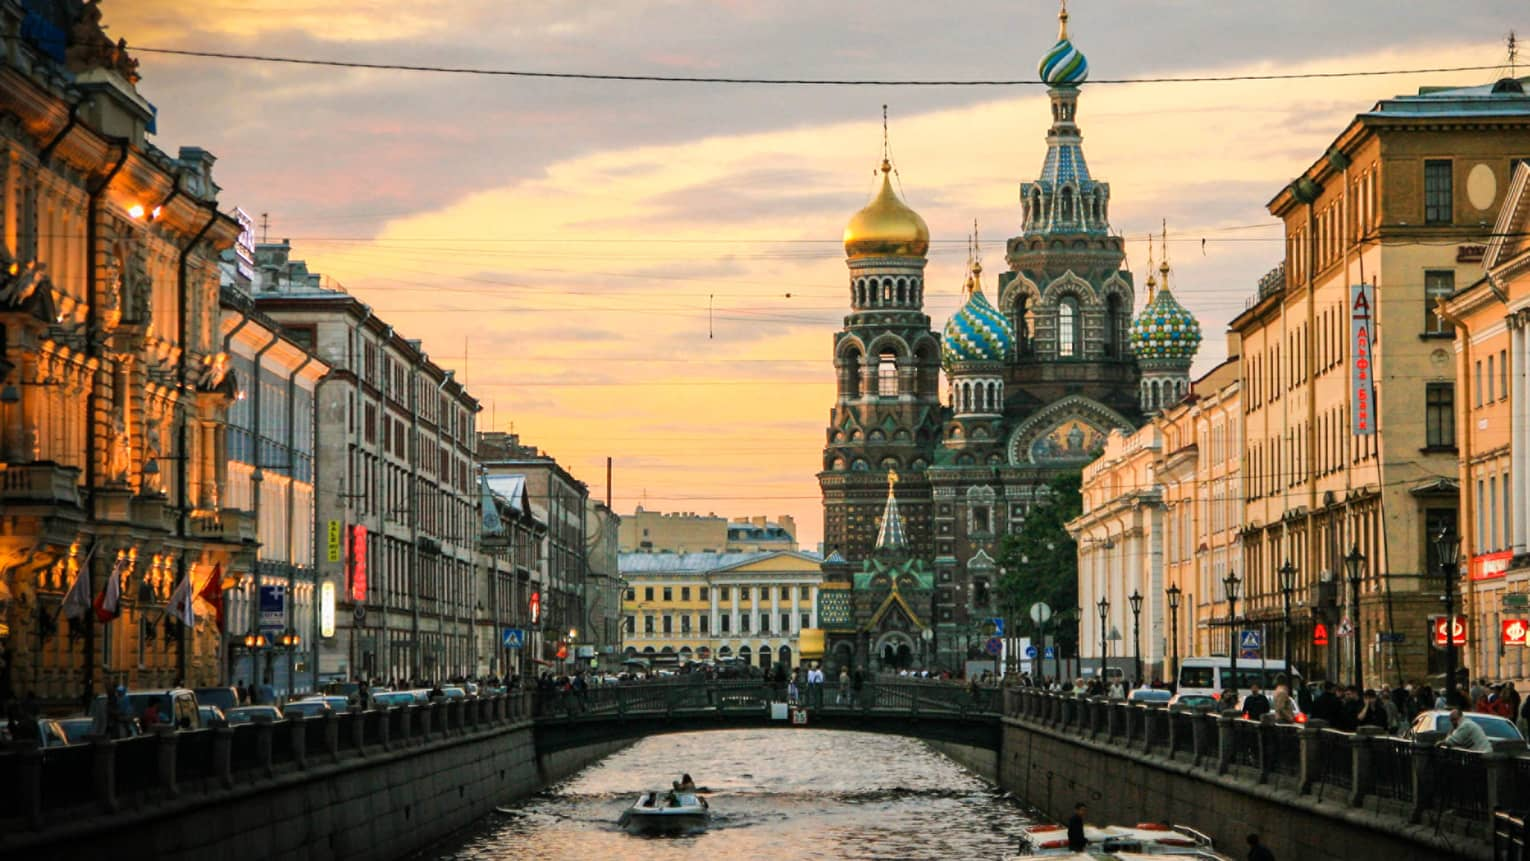 Large cathedral with colourful turrets over canal at sunset